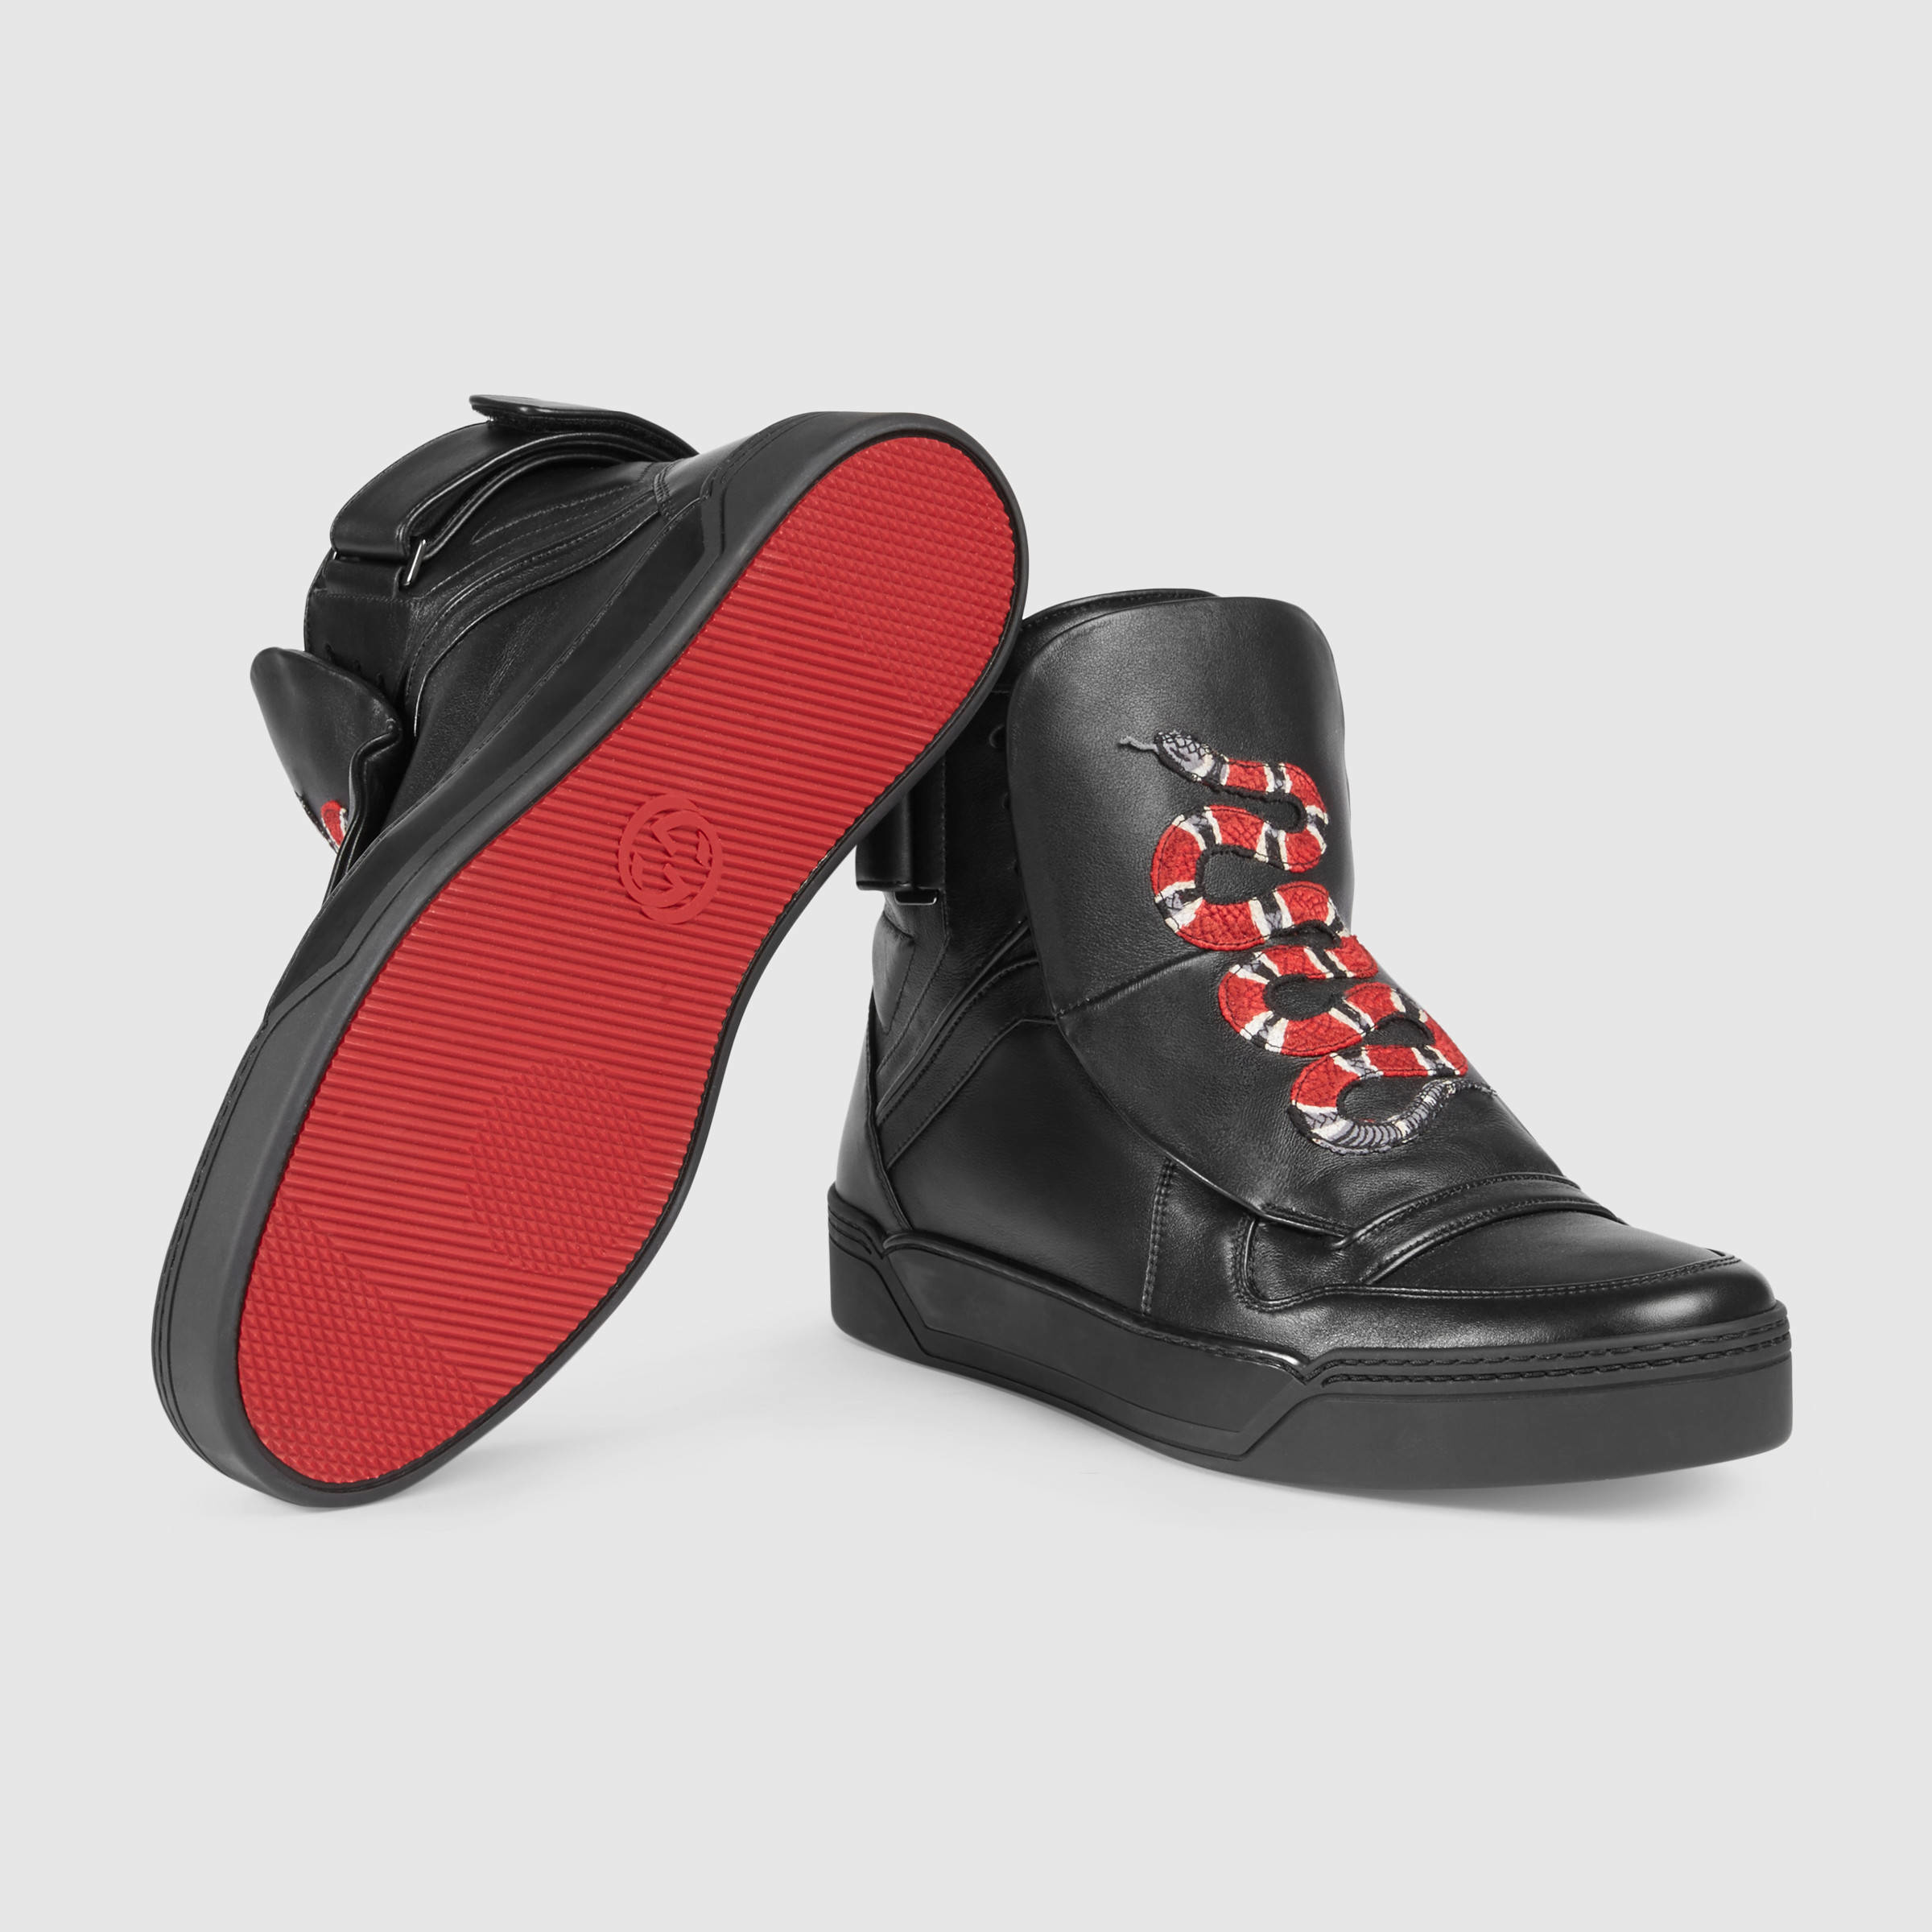 gucci shoes black snake. gallery gucci shoes black snake